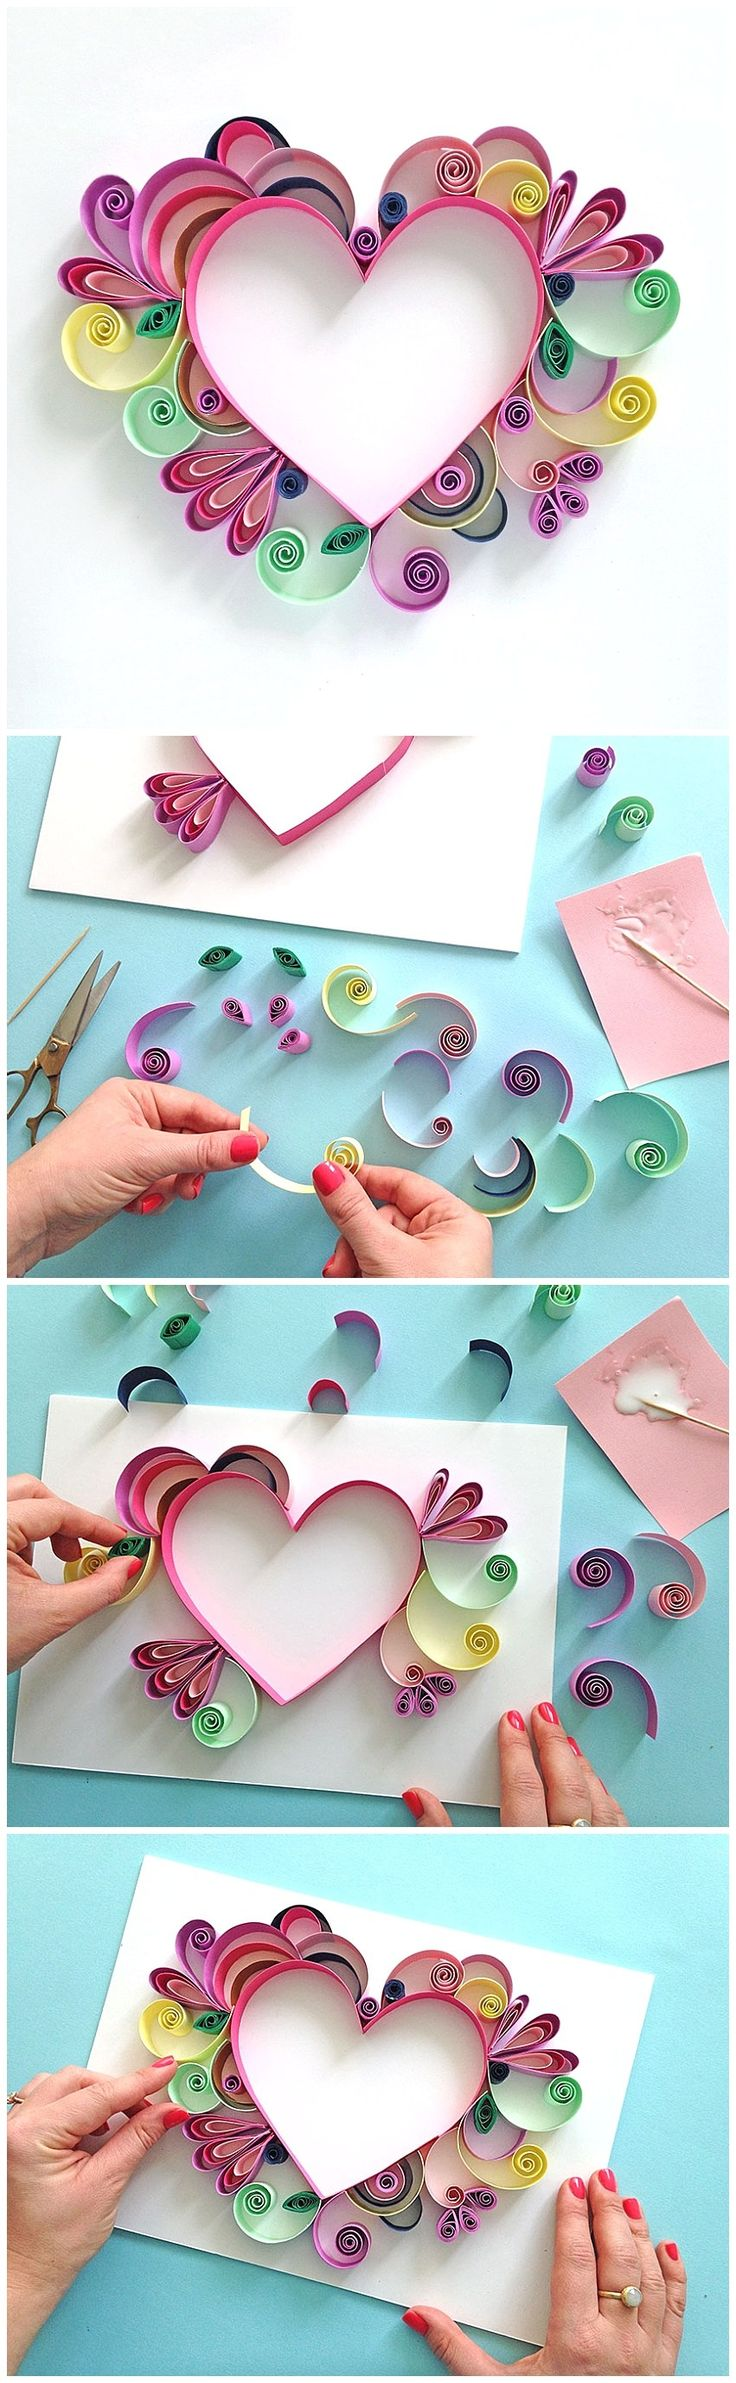 Learn How to Quill a darling Heart Shaped Mothers Day Paper Craft Gift Idea via Paper Chase - Moms and Grandmas will love these pretty handmade works of art! The BEST Easy DIY Mothers Day Gifts and Treats Ideas - Holiday Craft Activity Projects, Free Printables and Favorite Brunch Desserts Recipes for Moms and Grandmas